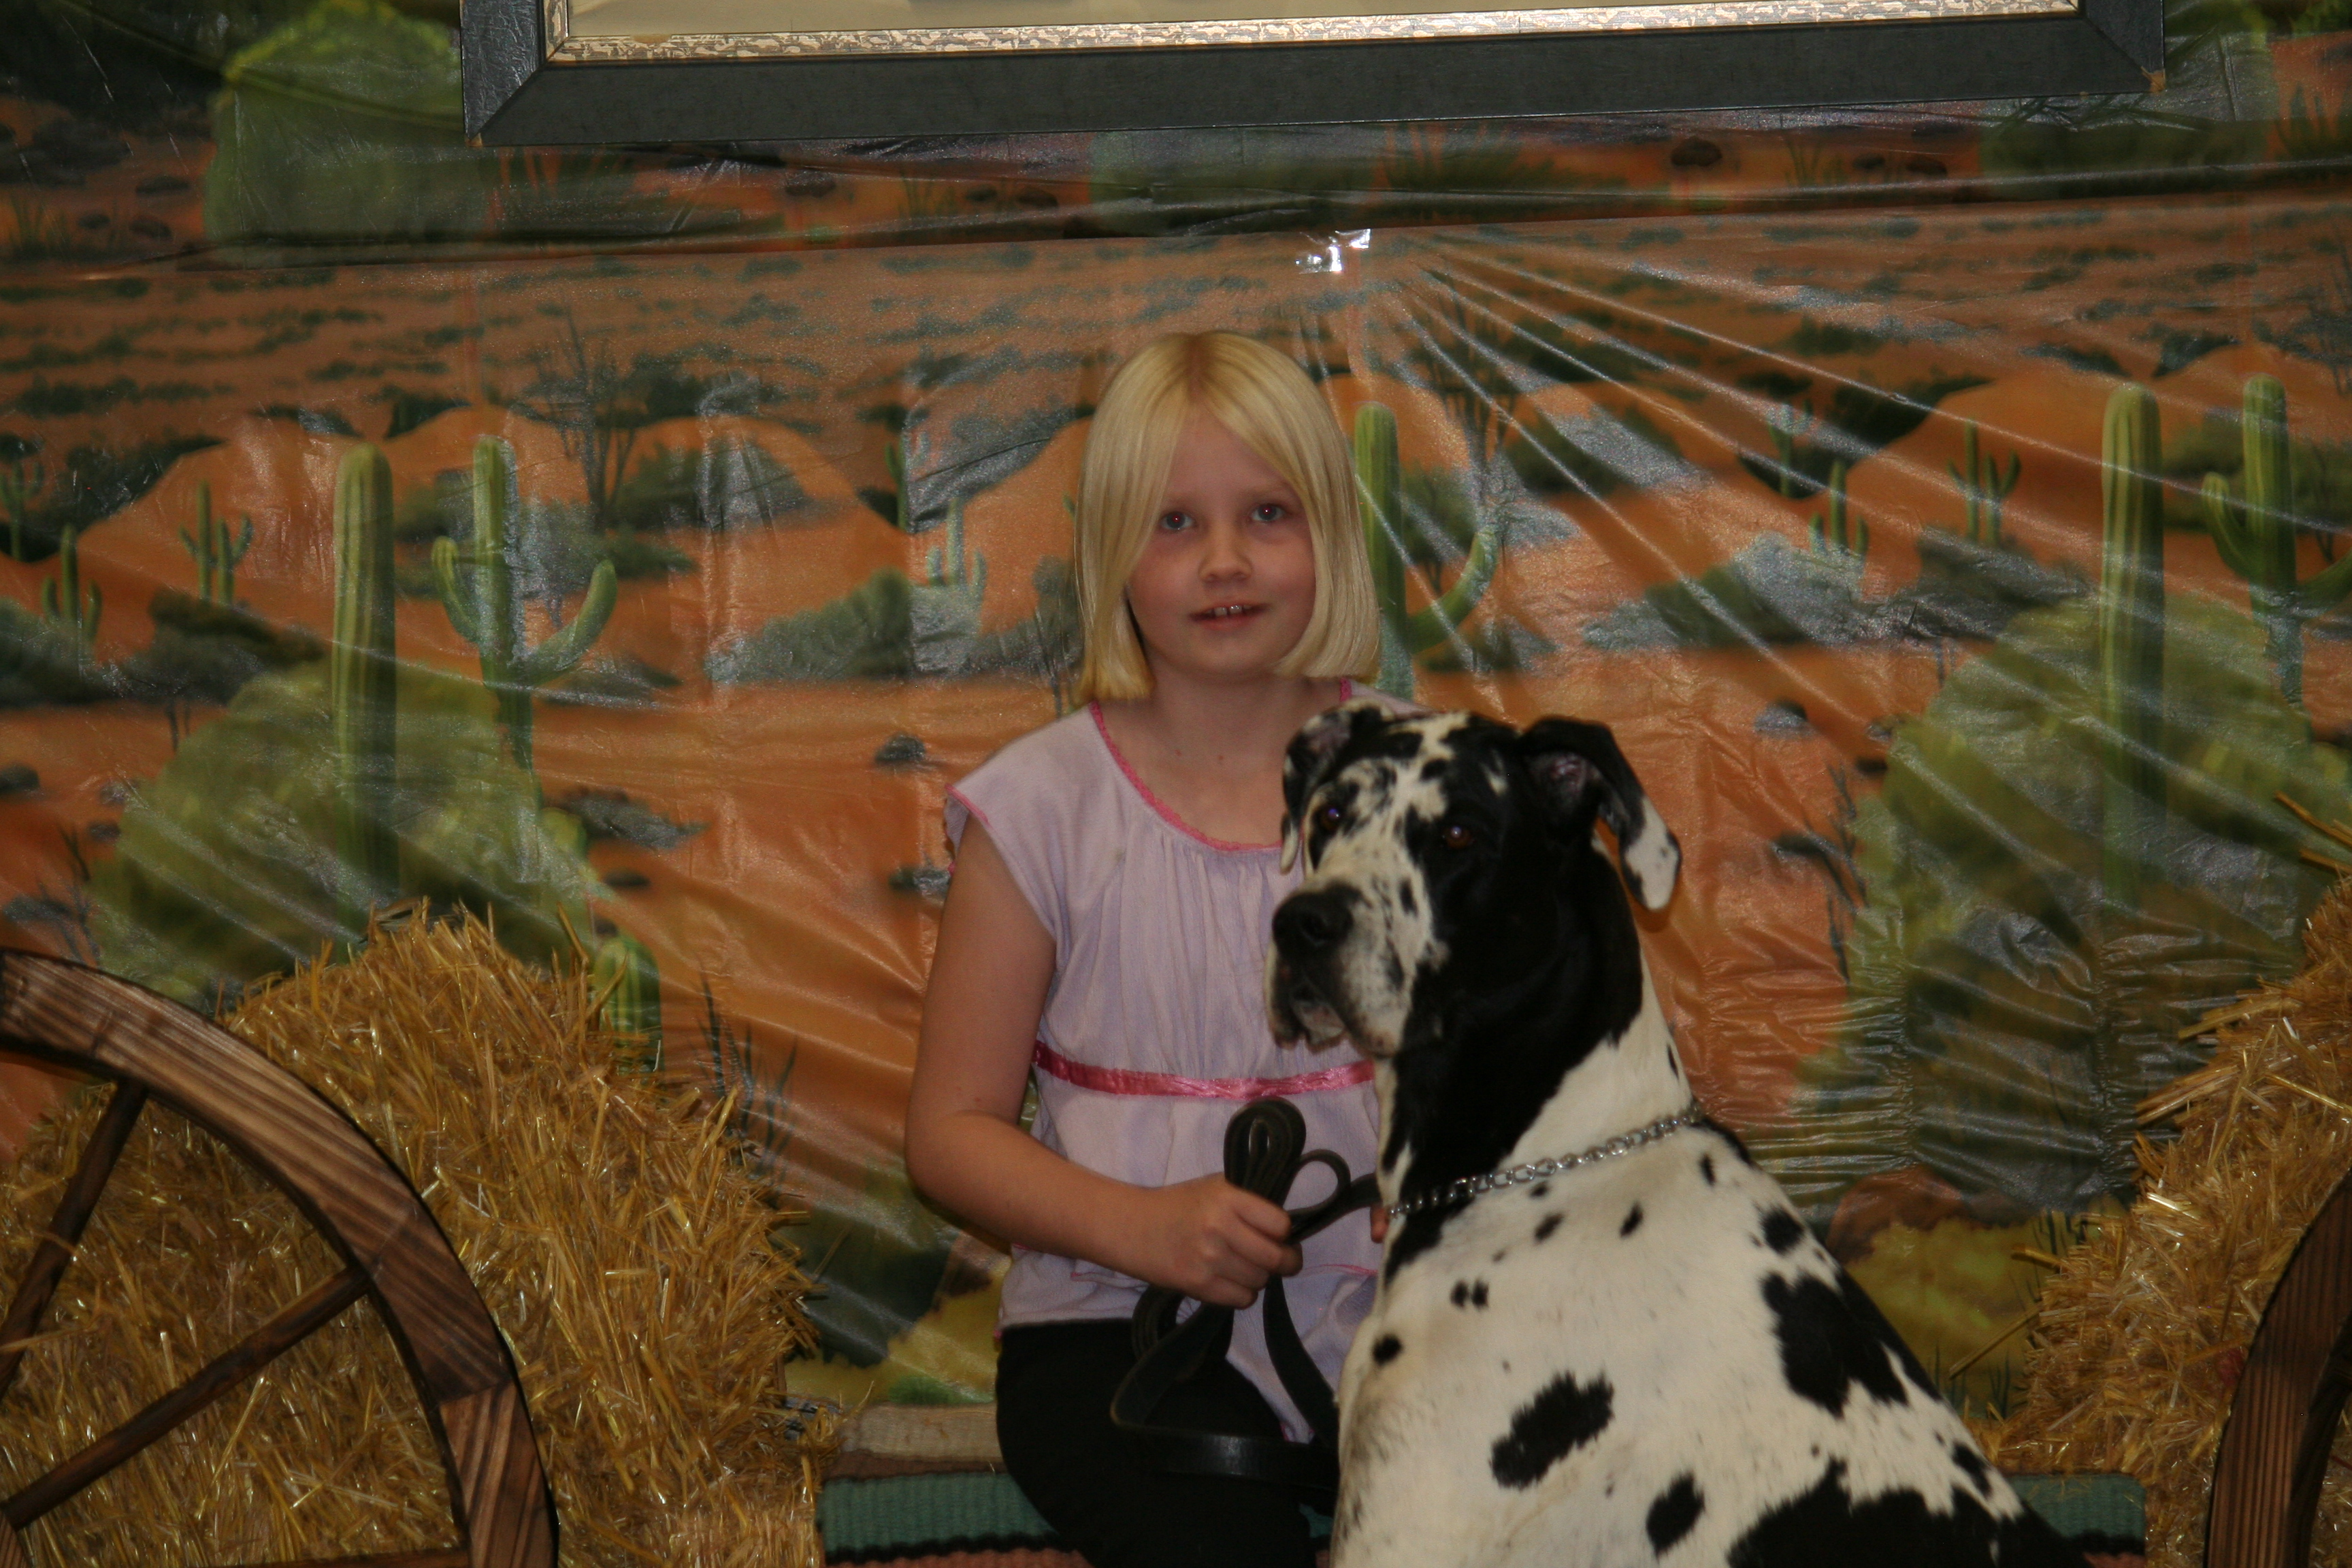 Young girl with black and white large dog.